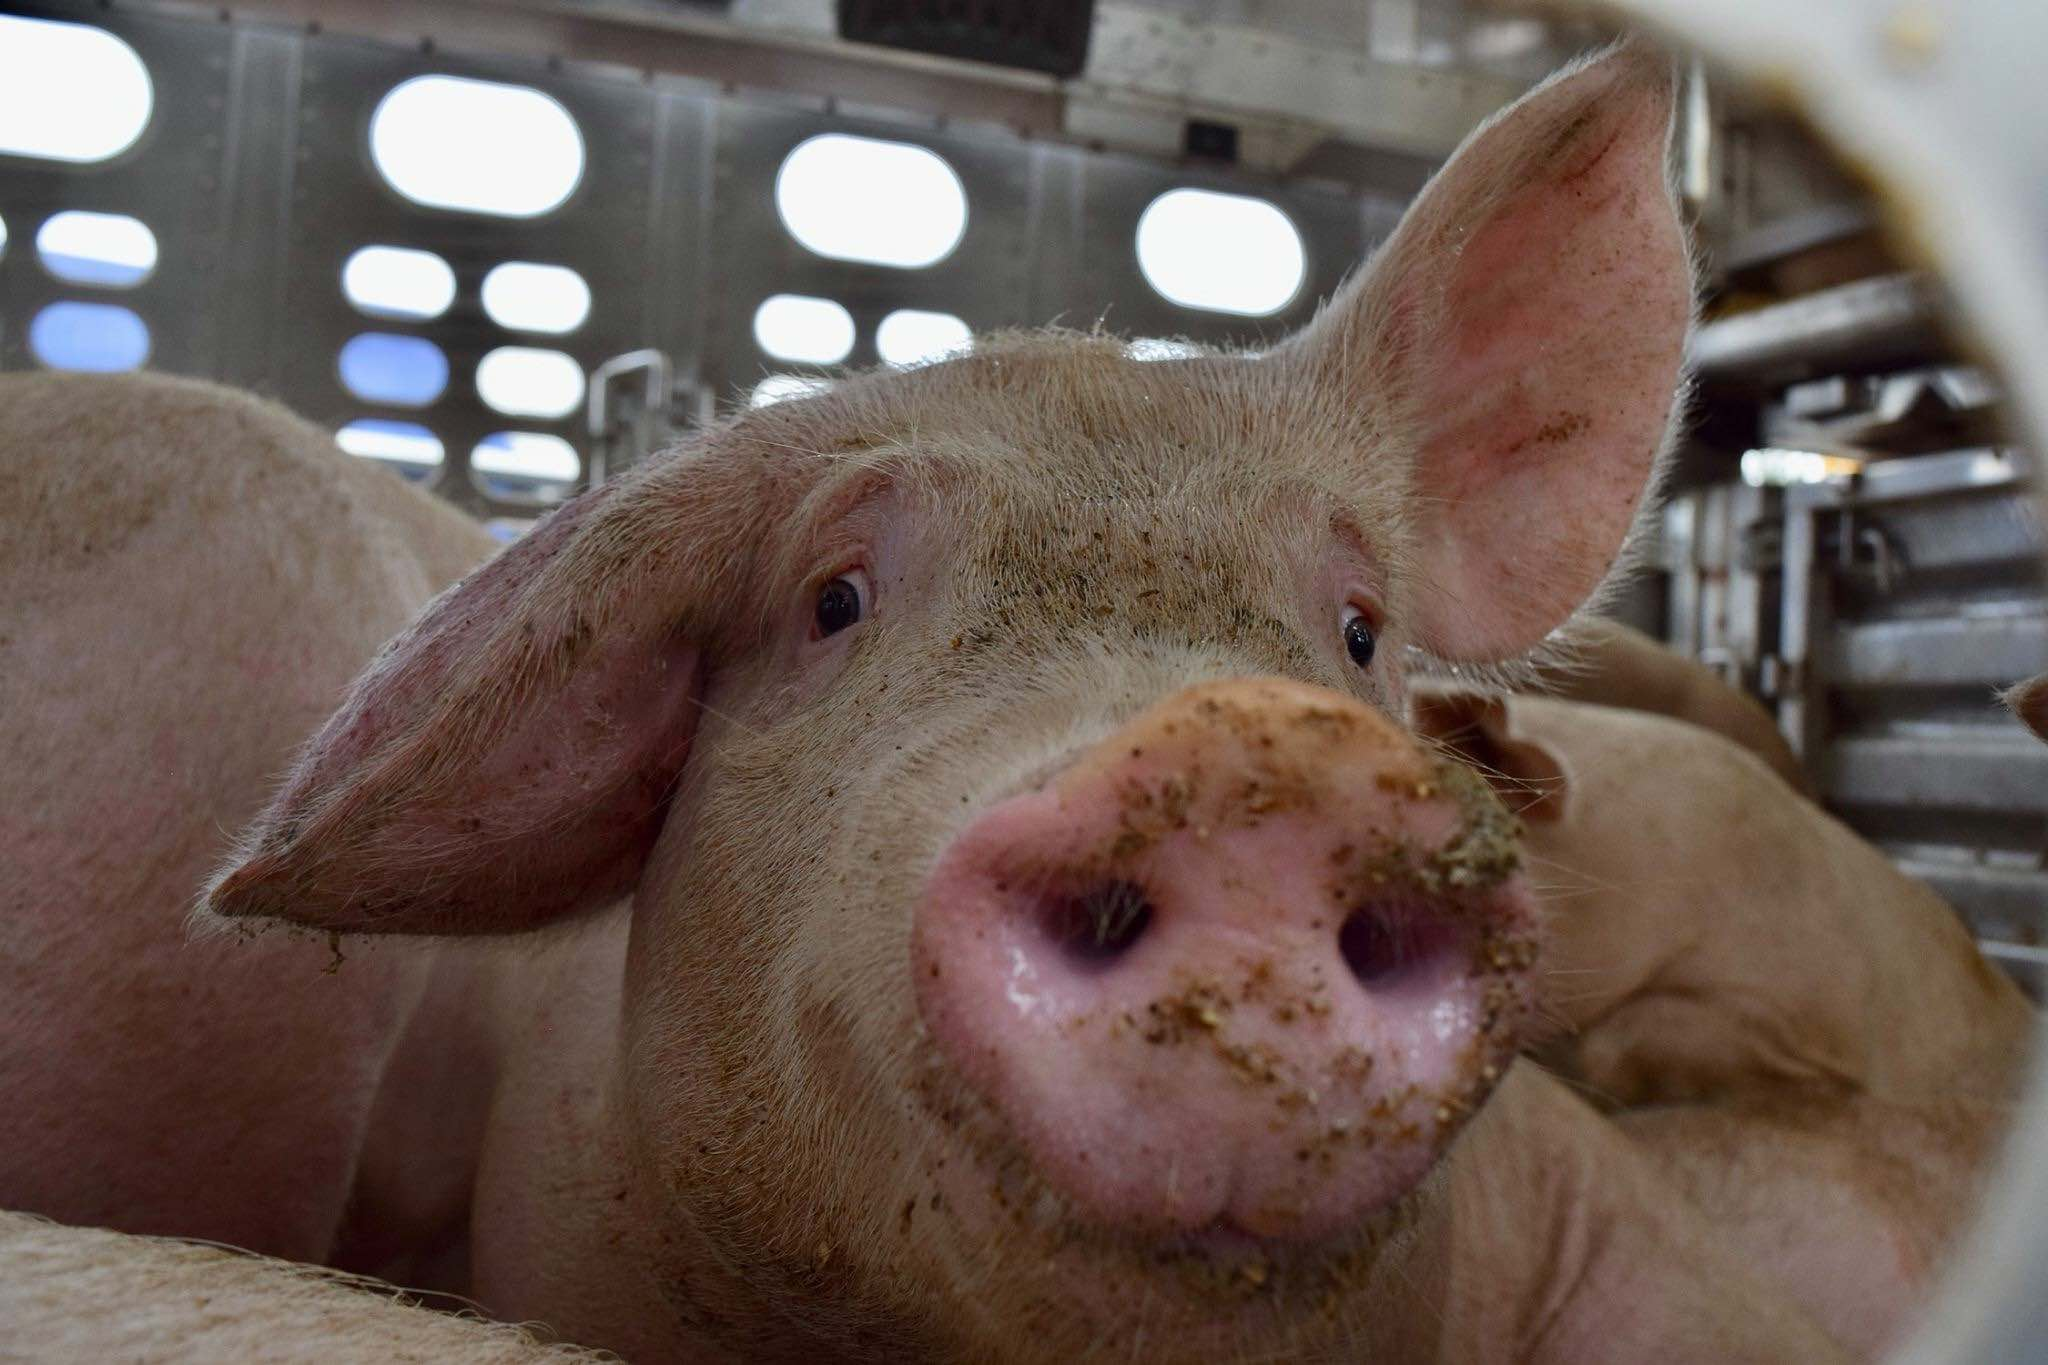 A pig going to slaughter